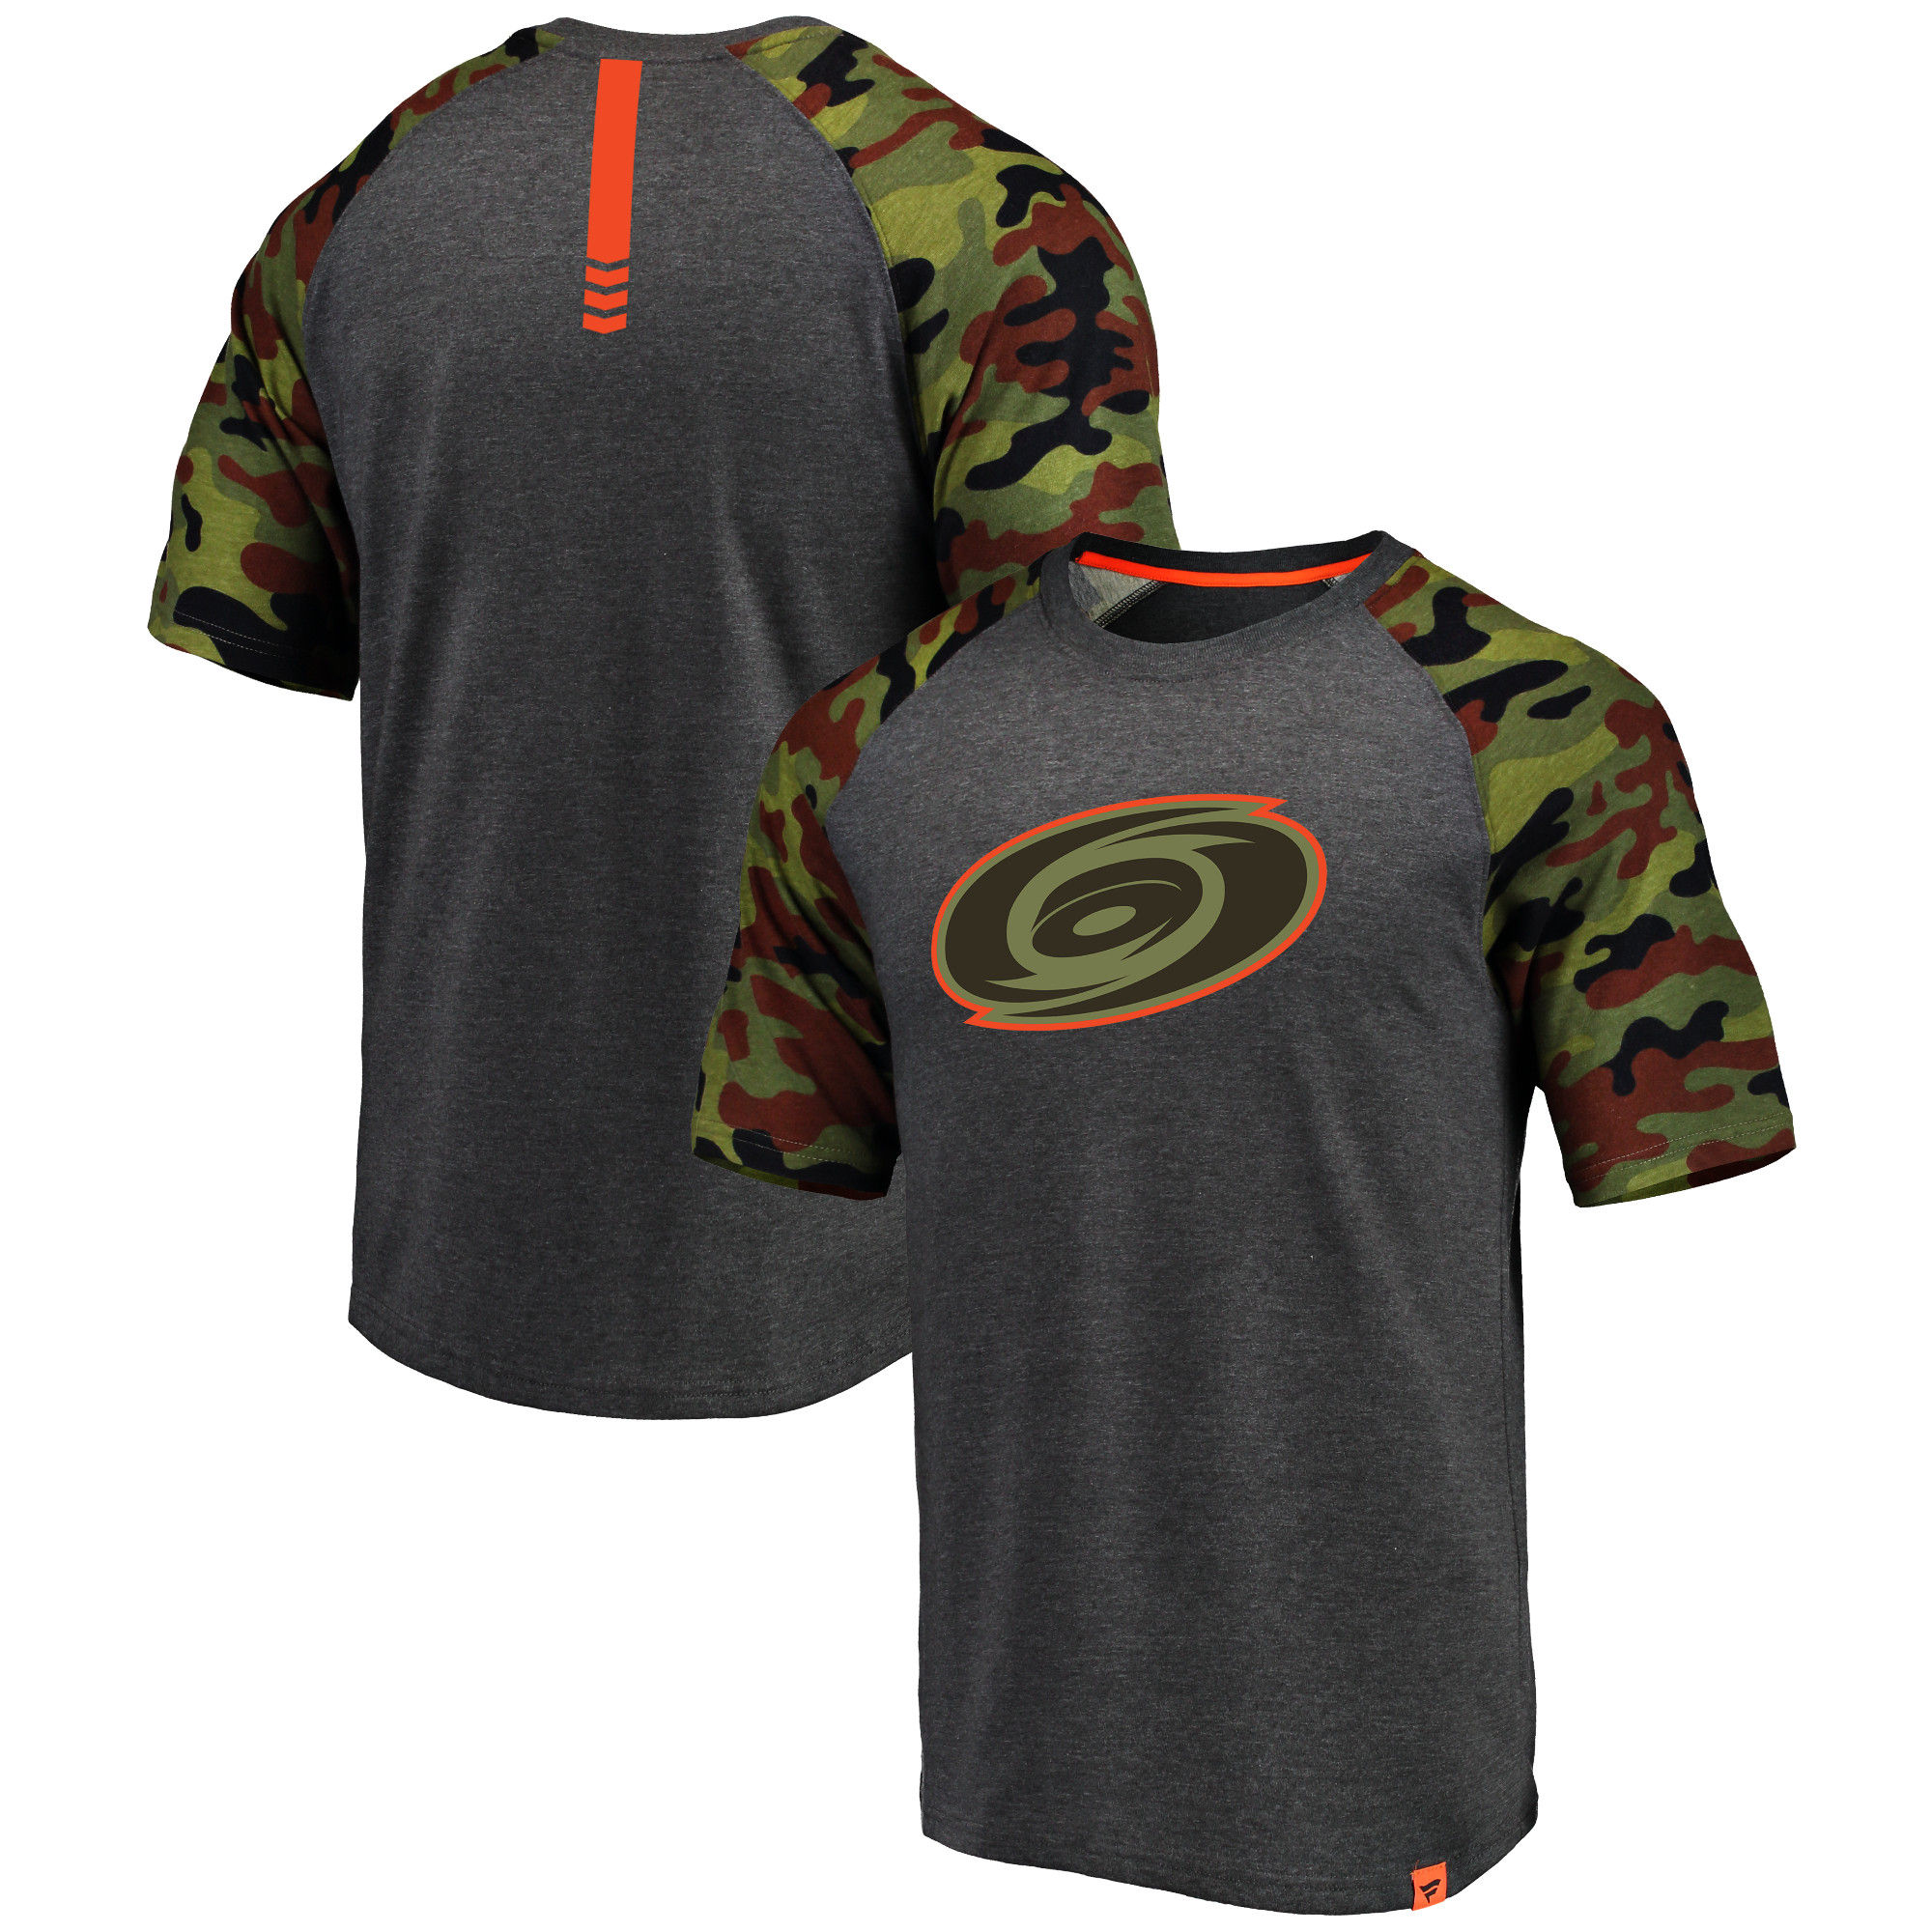 Carolina Hurricanes Fanatics Branded Heathered Gray/Camo Recon Camo Raglan T-Shirt